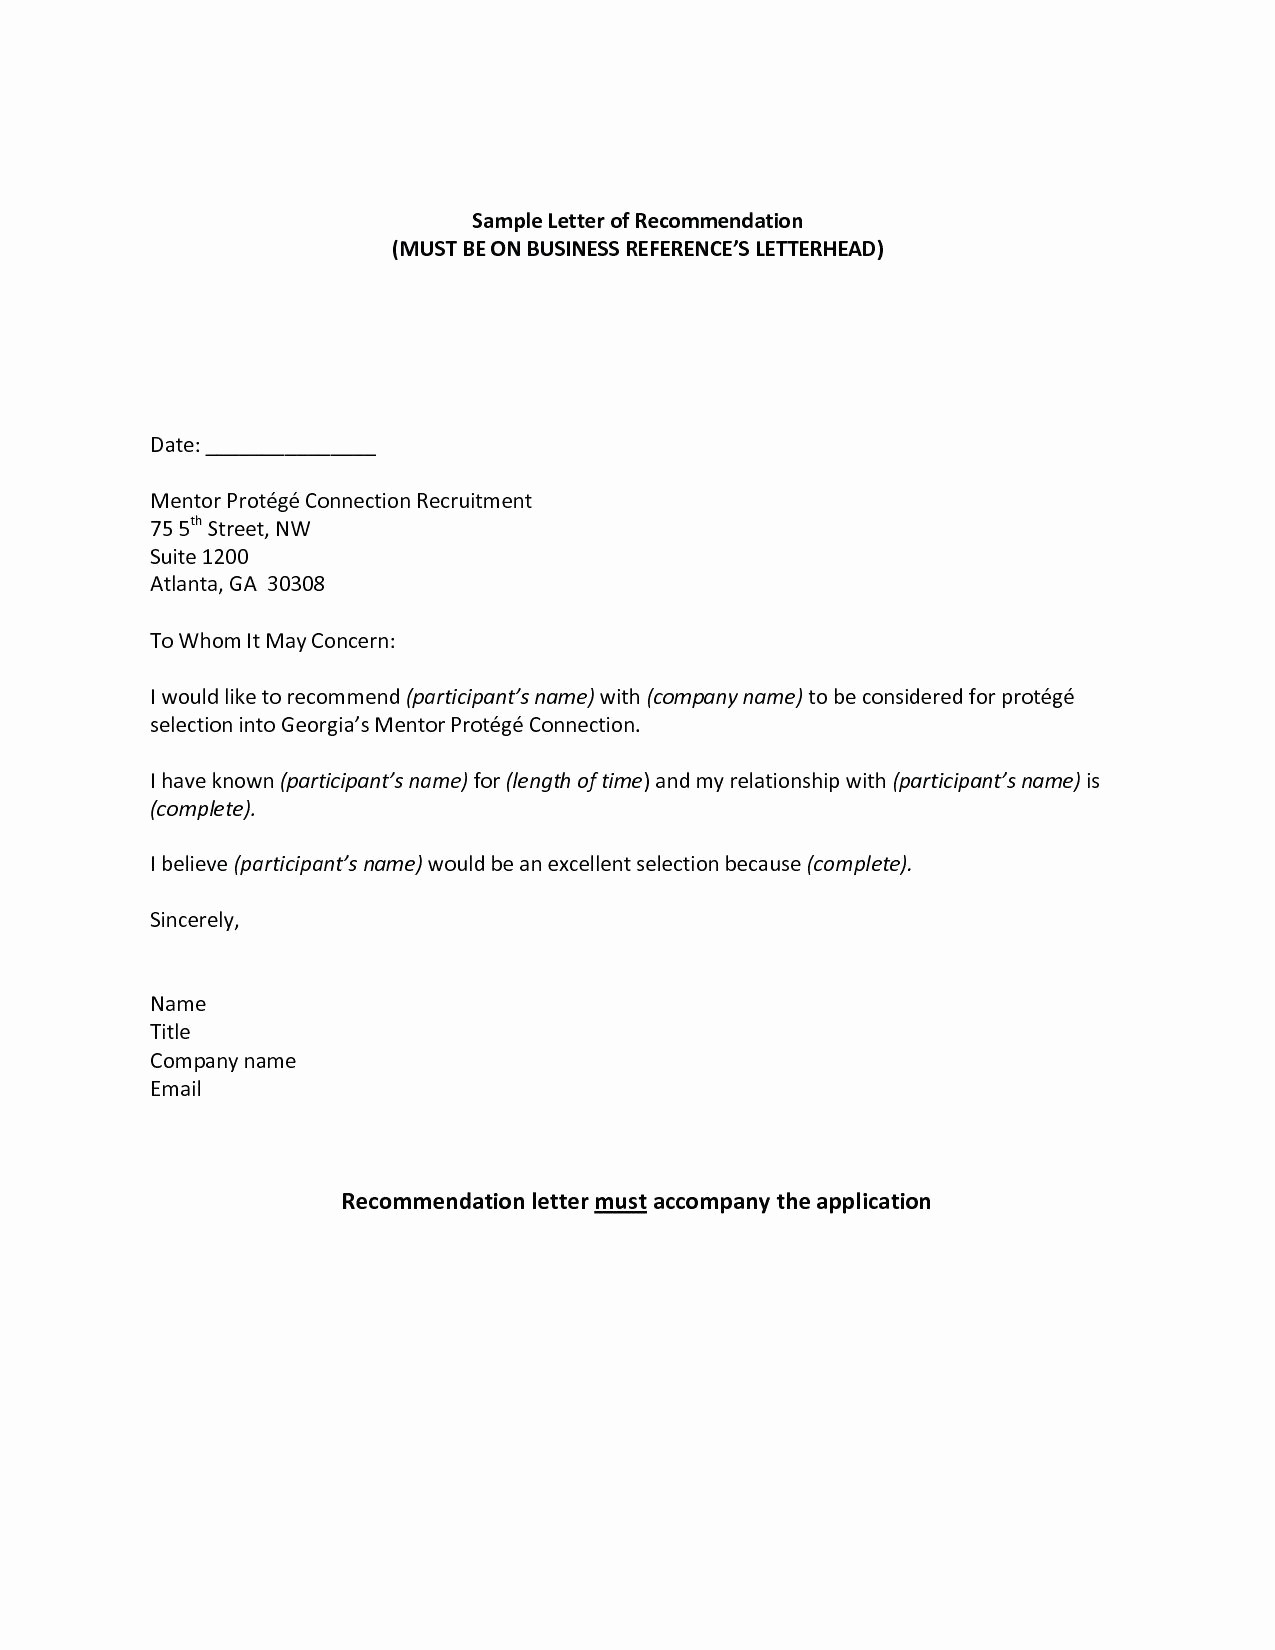 Format for Letters Of Recommendation Best Of Mortgage Reference Letter From Employer Template Samples